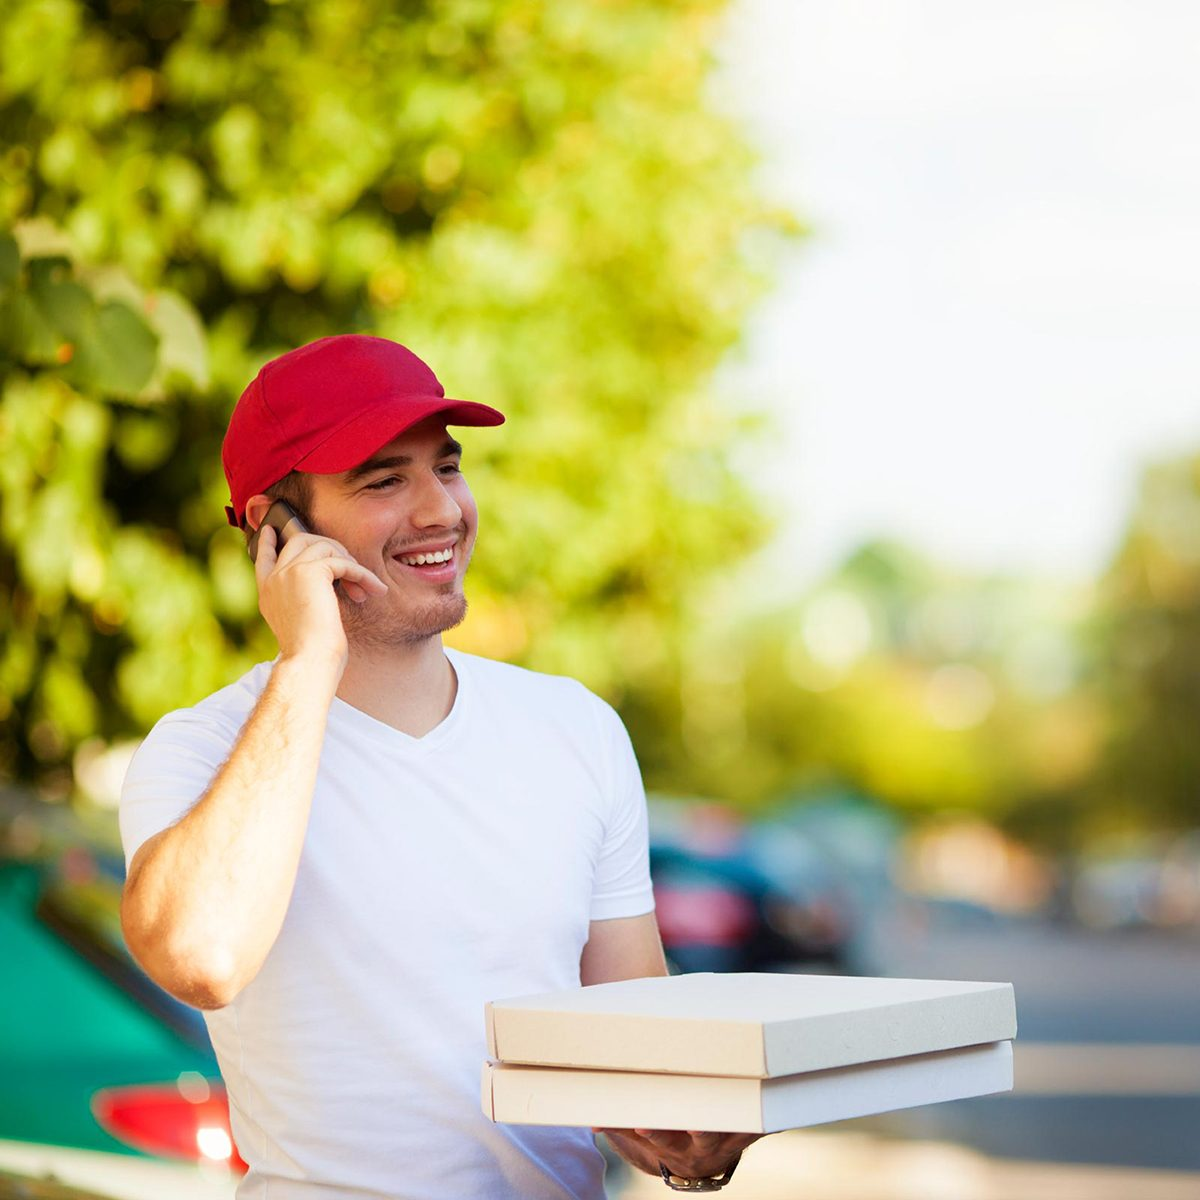 Pizza guy on phone